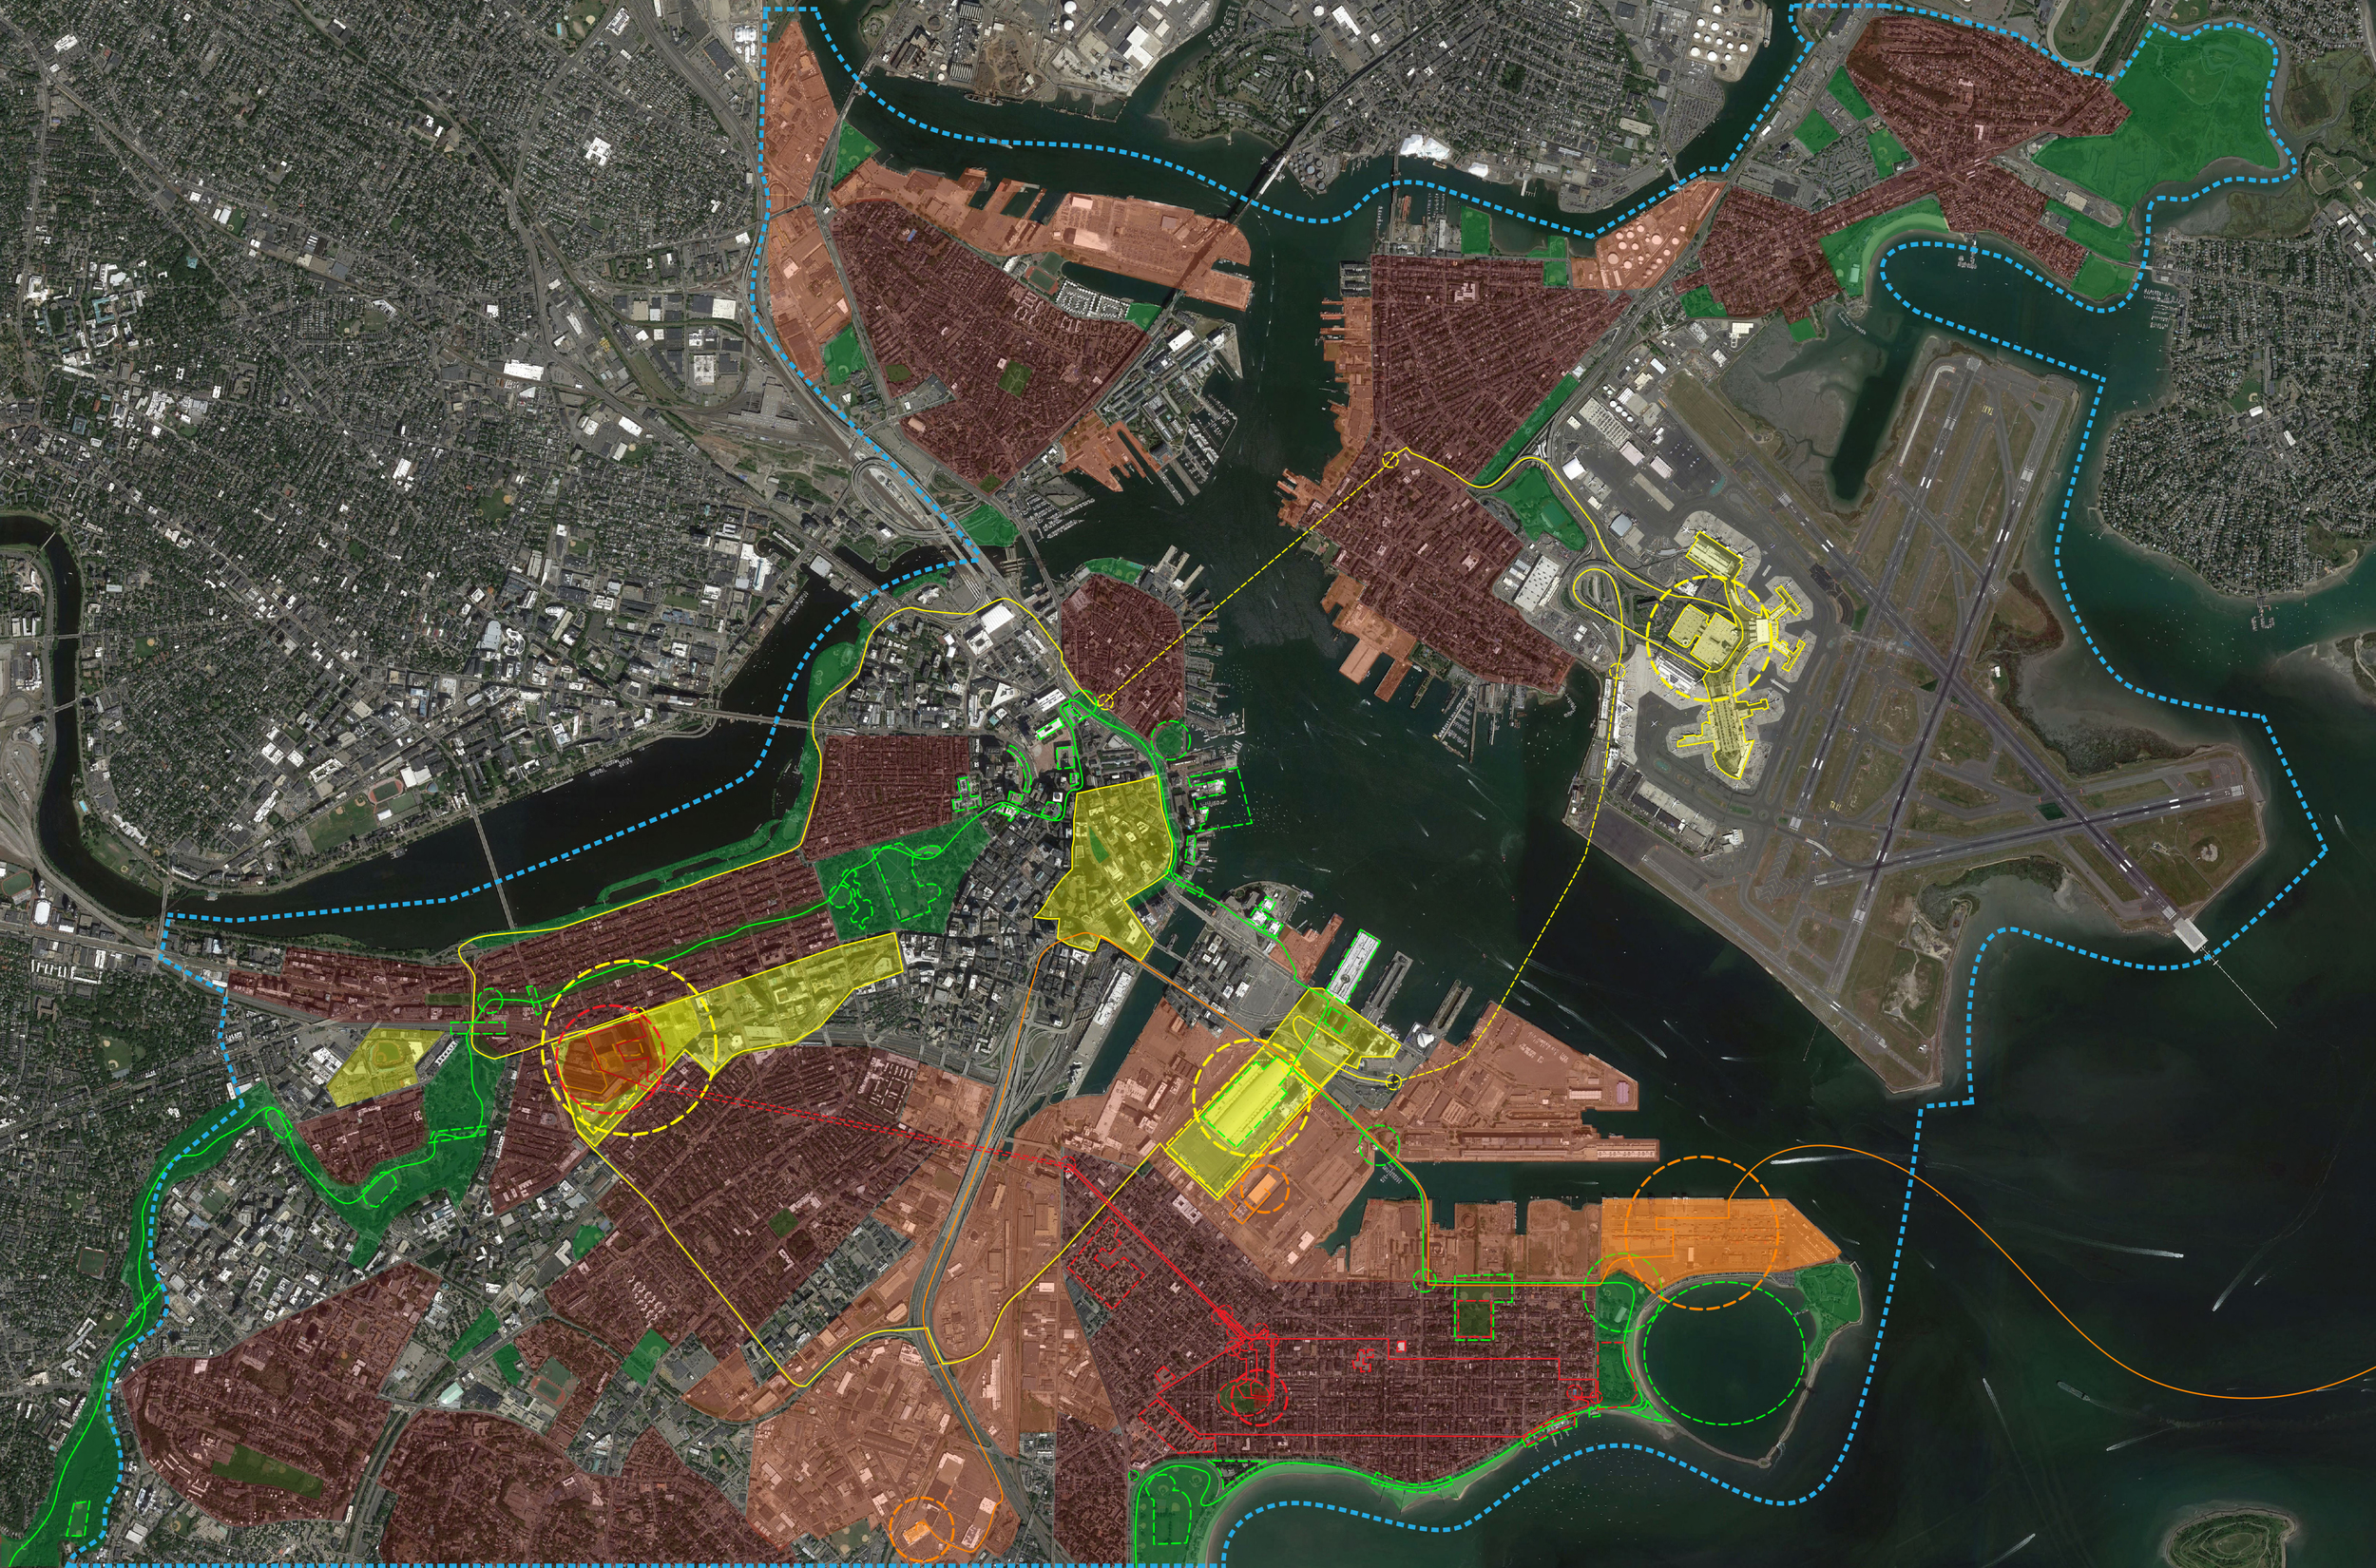 Composite character narratives and hyper-worlds map of Boston